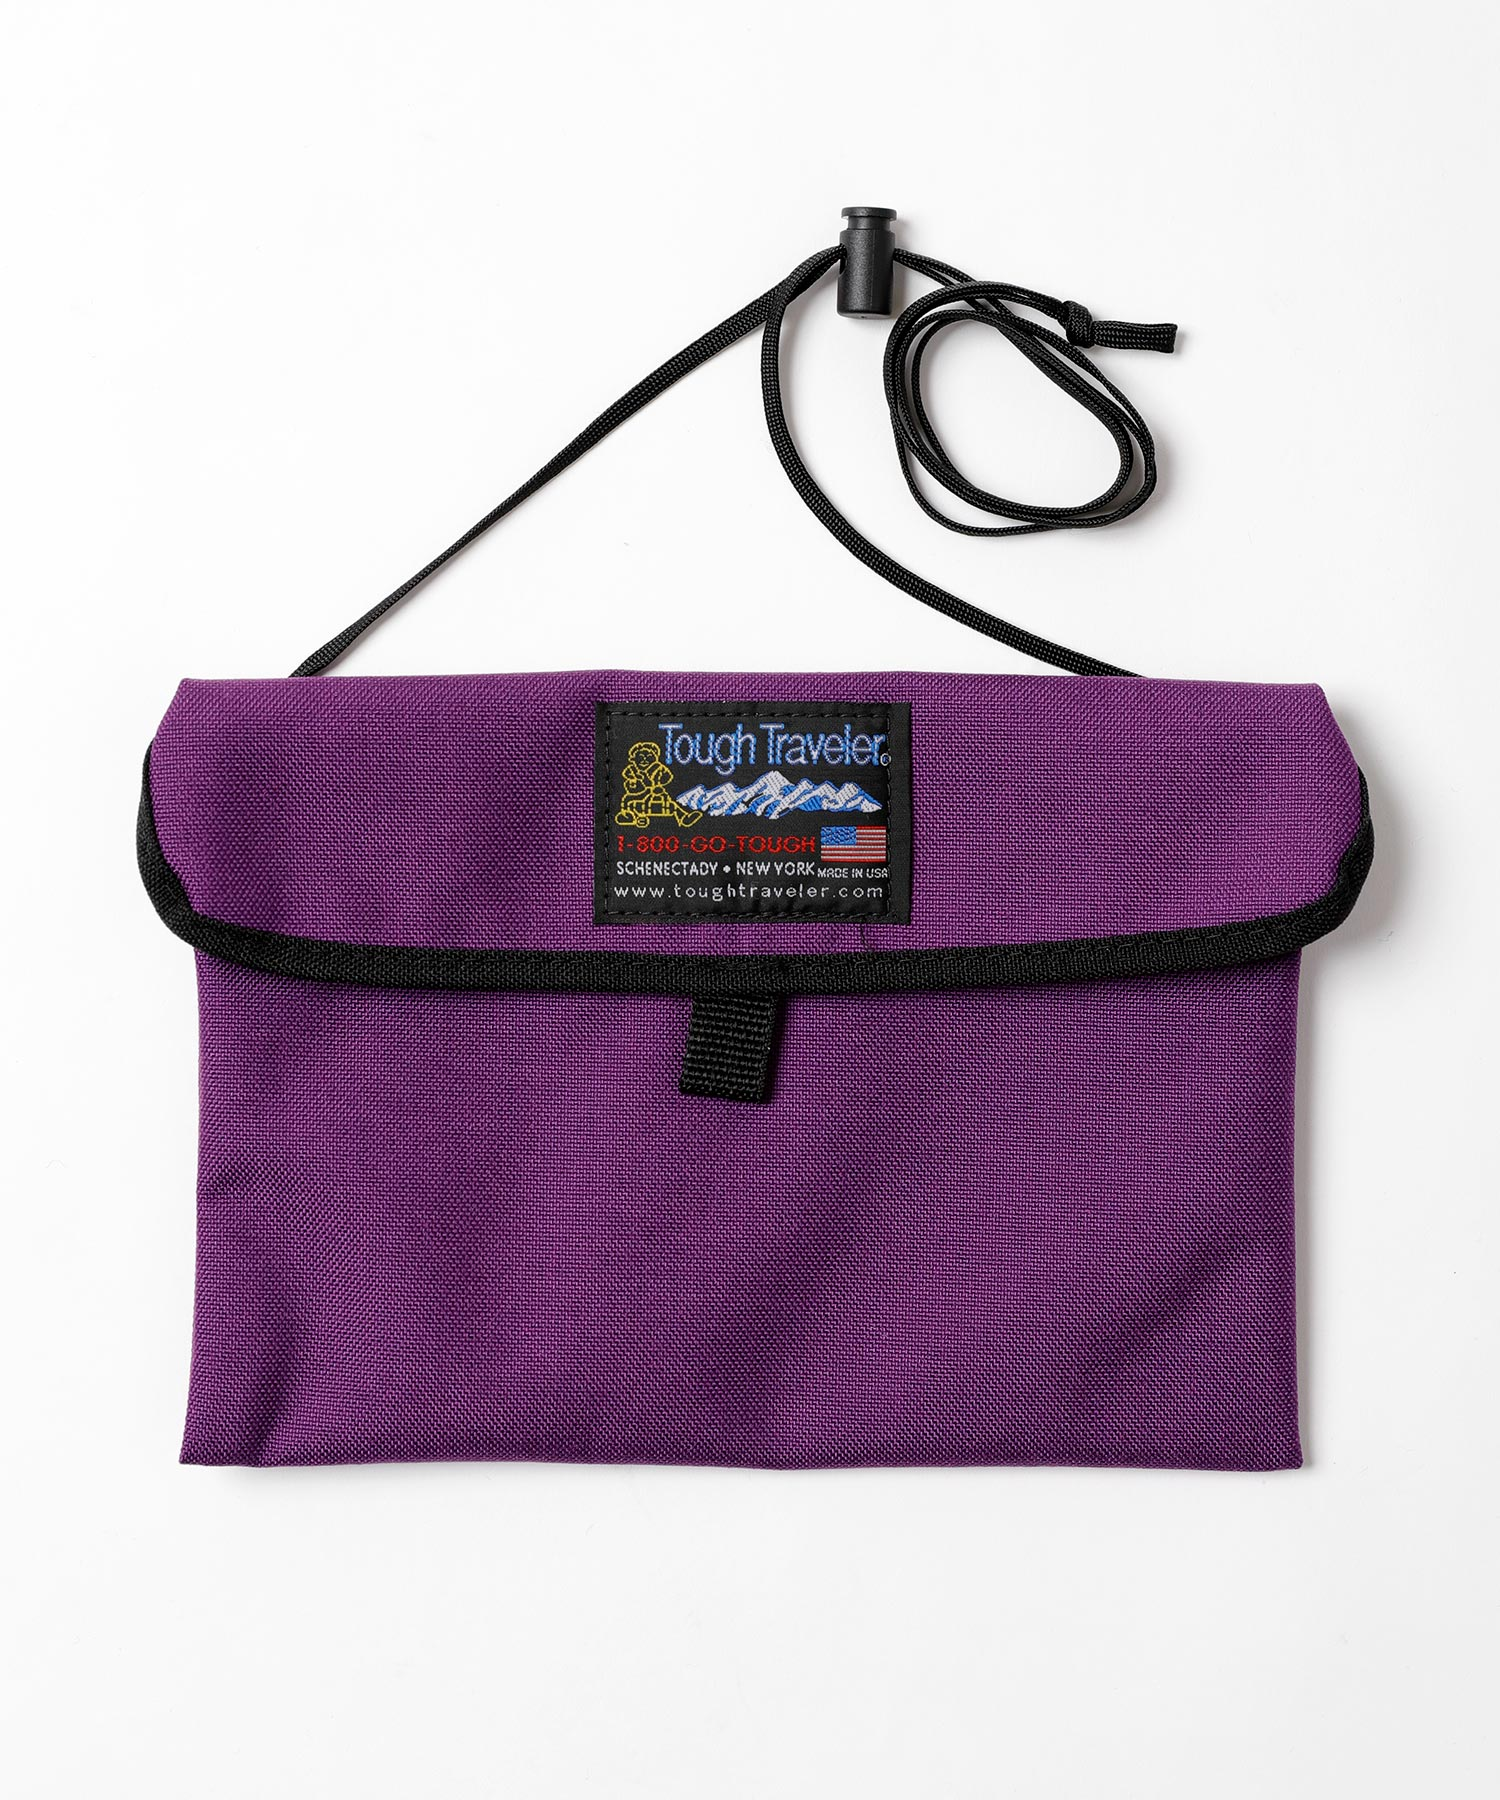 Flap Neck Pouch L/サコッシュバッグ